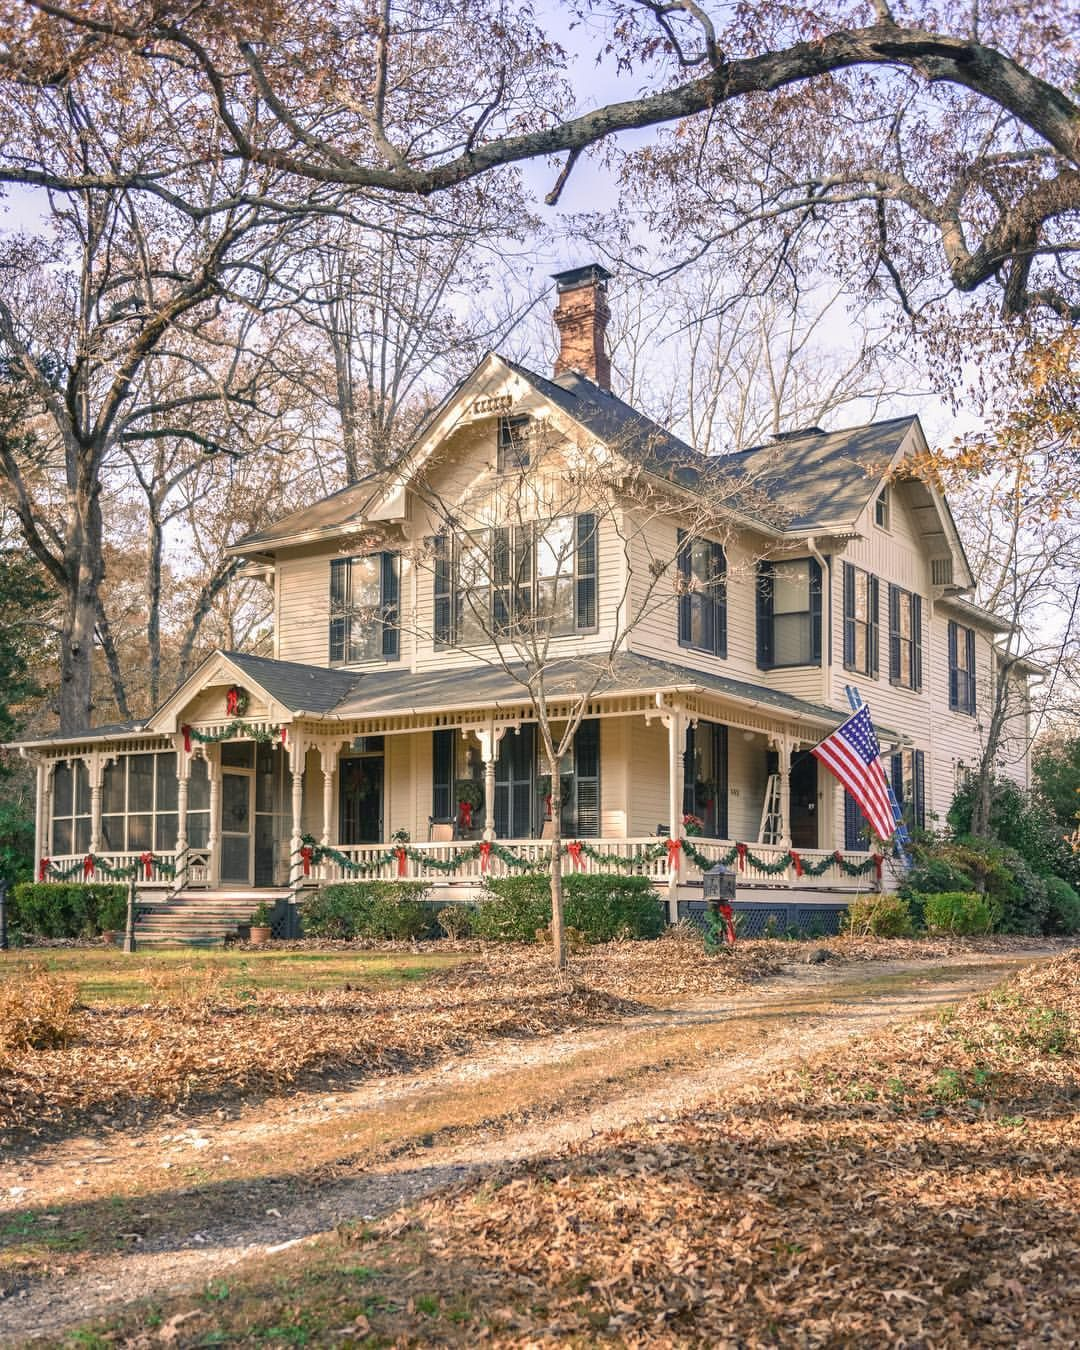 Marietta Christmas Tour Of Homes 2019 Anyone itching to get the garland up? This 📷 was taken for the